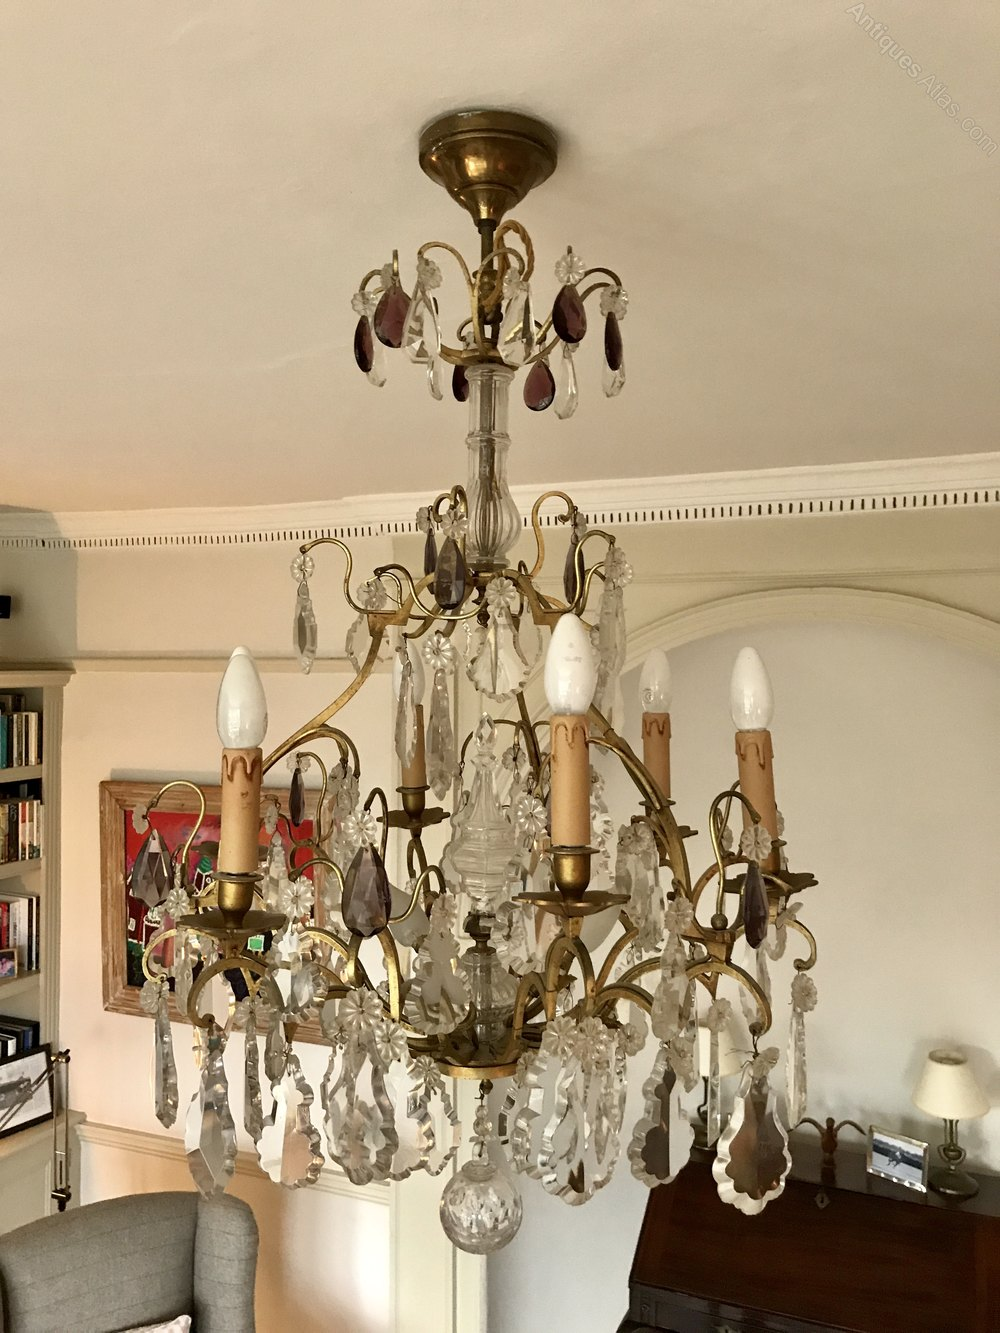 This is a excellent quality antique french chandelier. The frame retains  its original gilding and holds the original good quality crystal drops. - French Chandeliers - Flemish Chandeliers